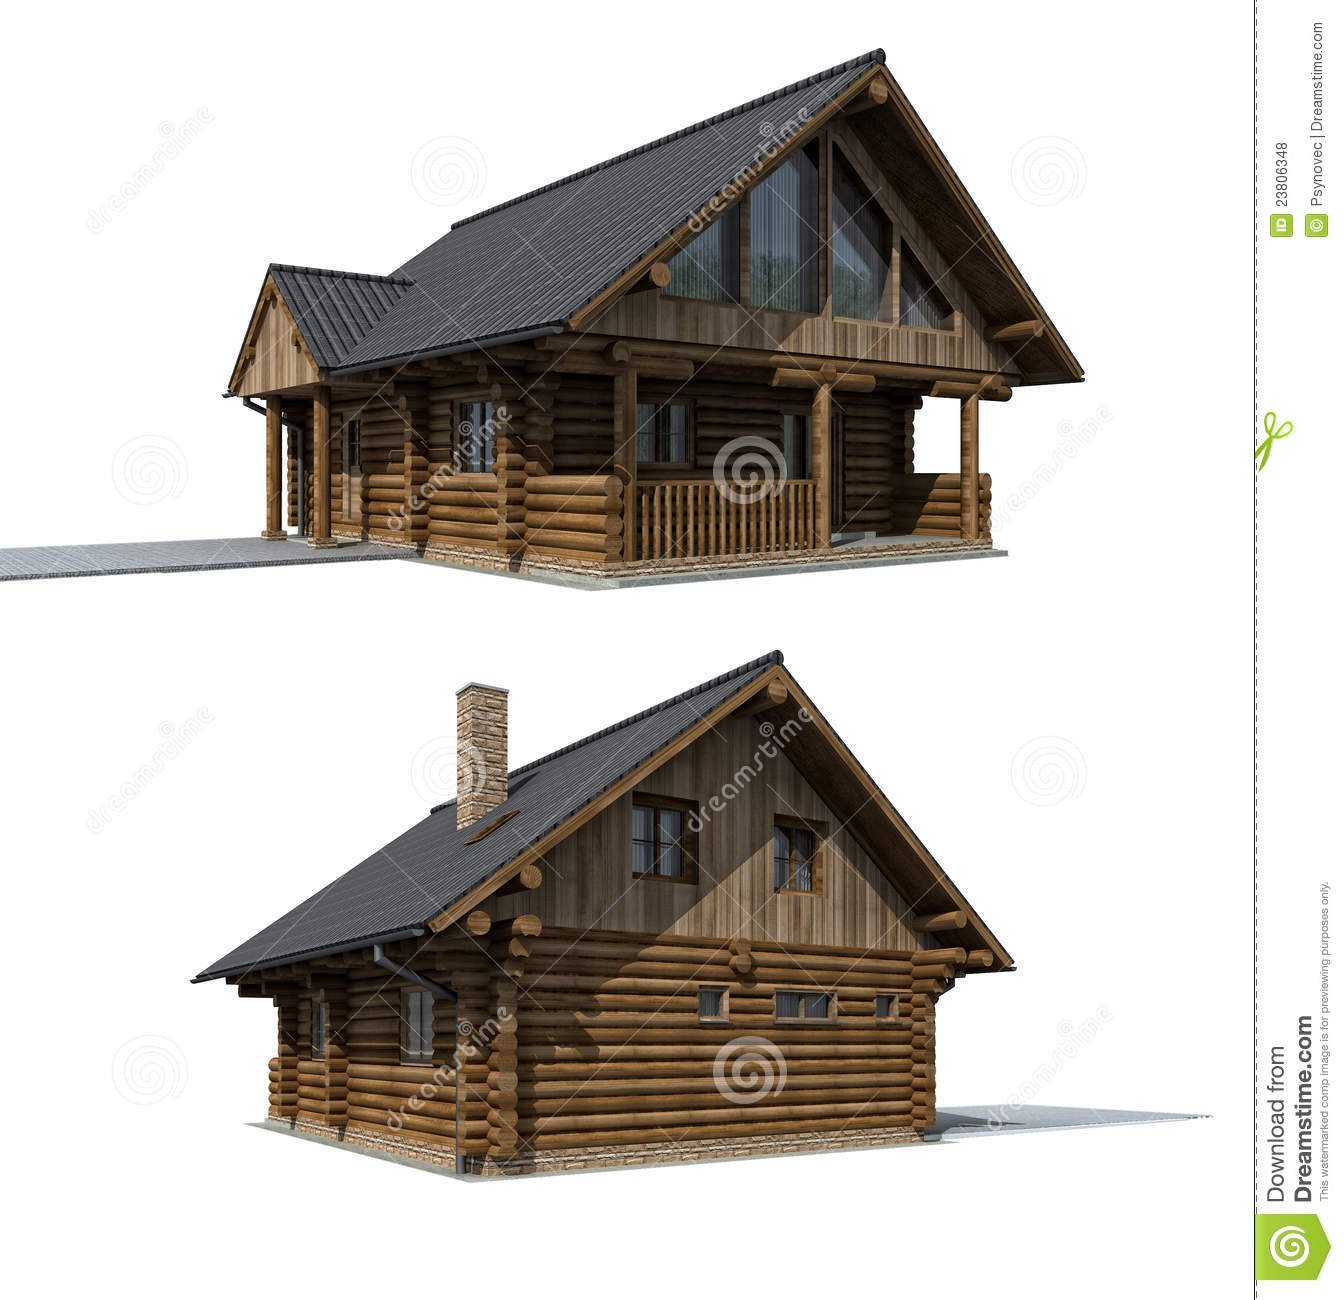 Wood cabine cottage royalty free stock photos image for Witches cottage house plans